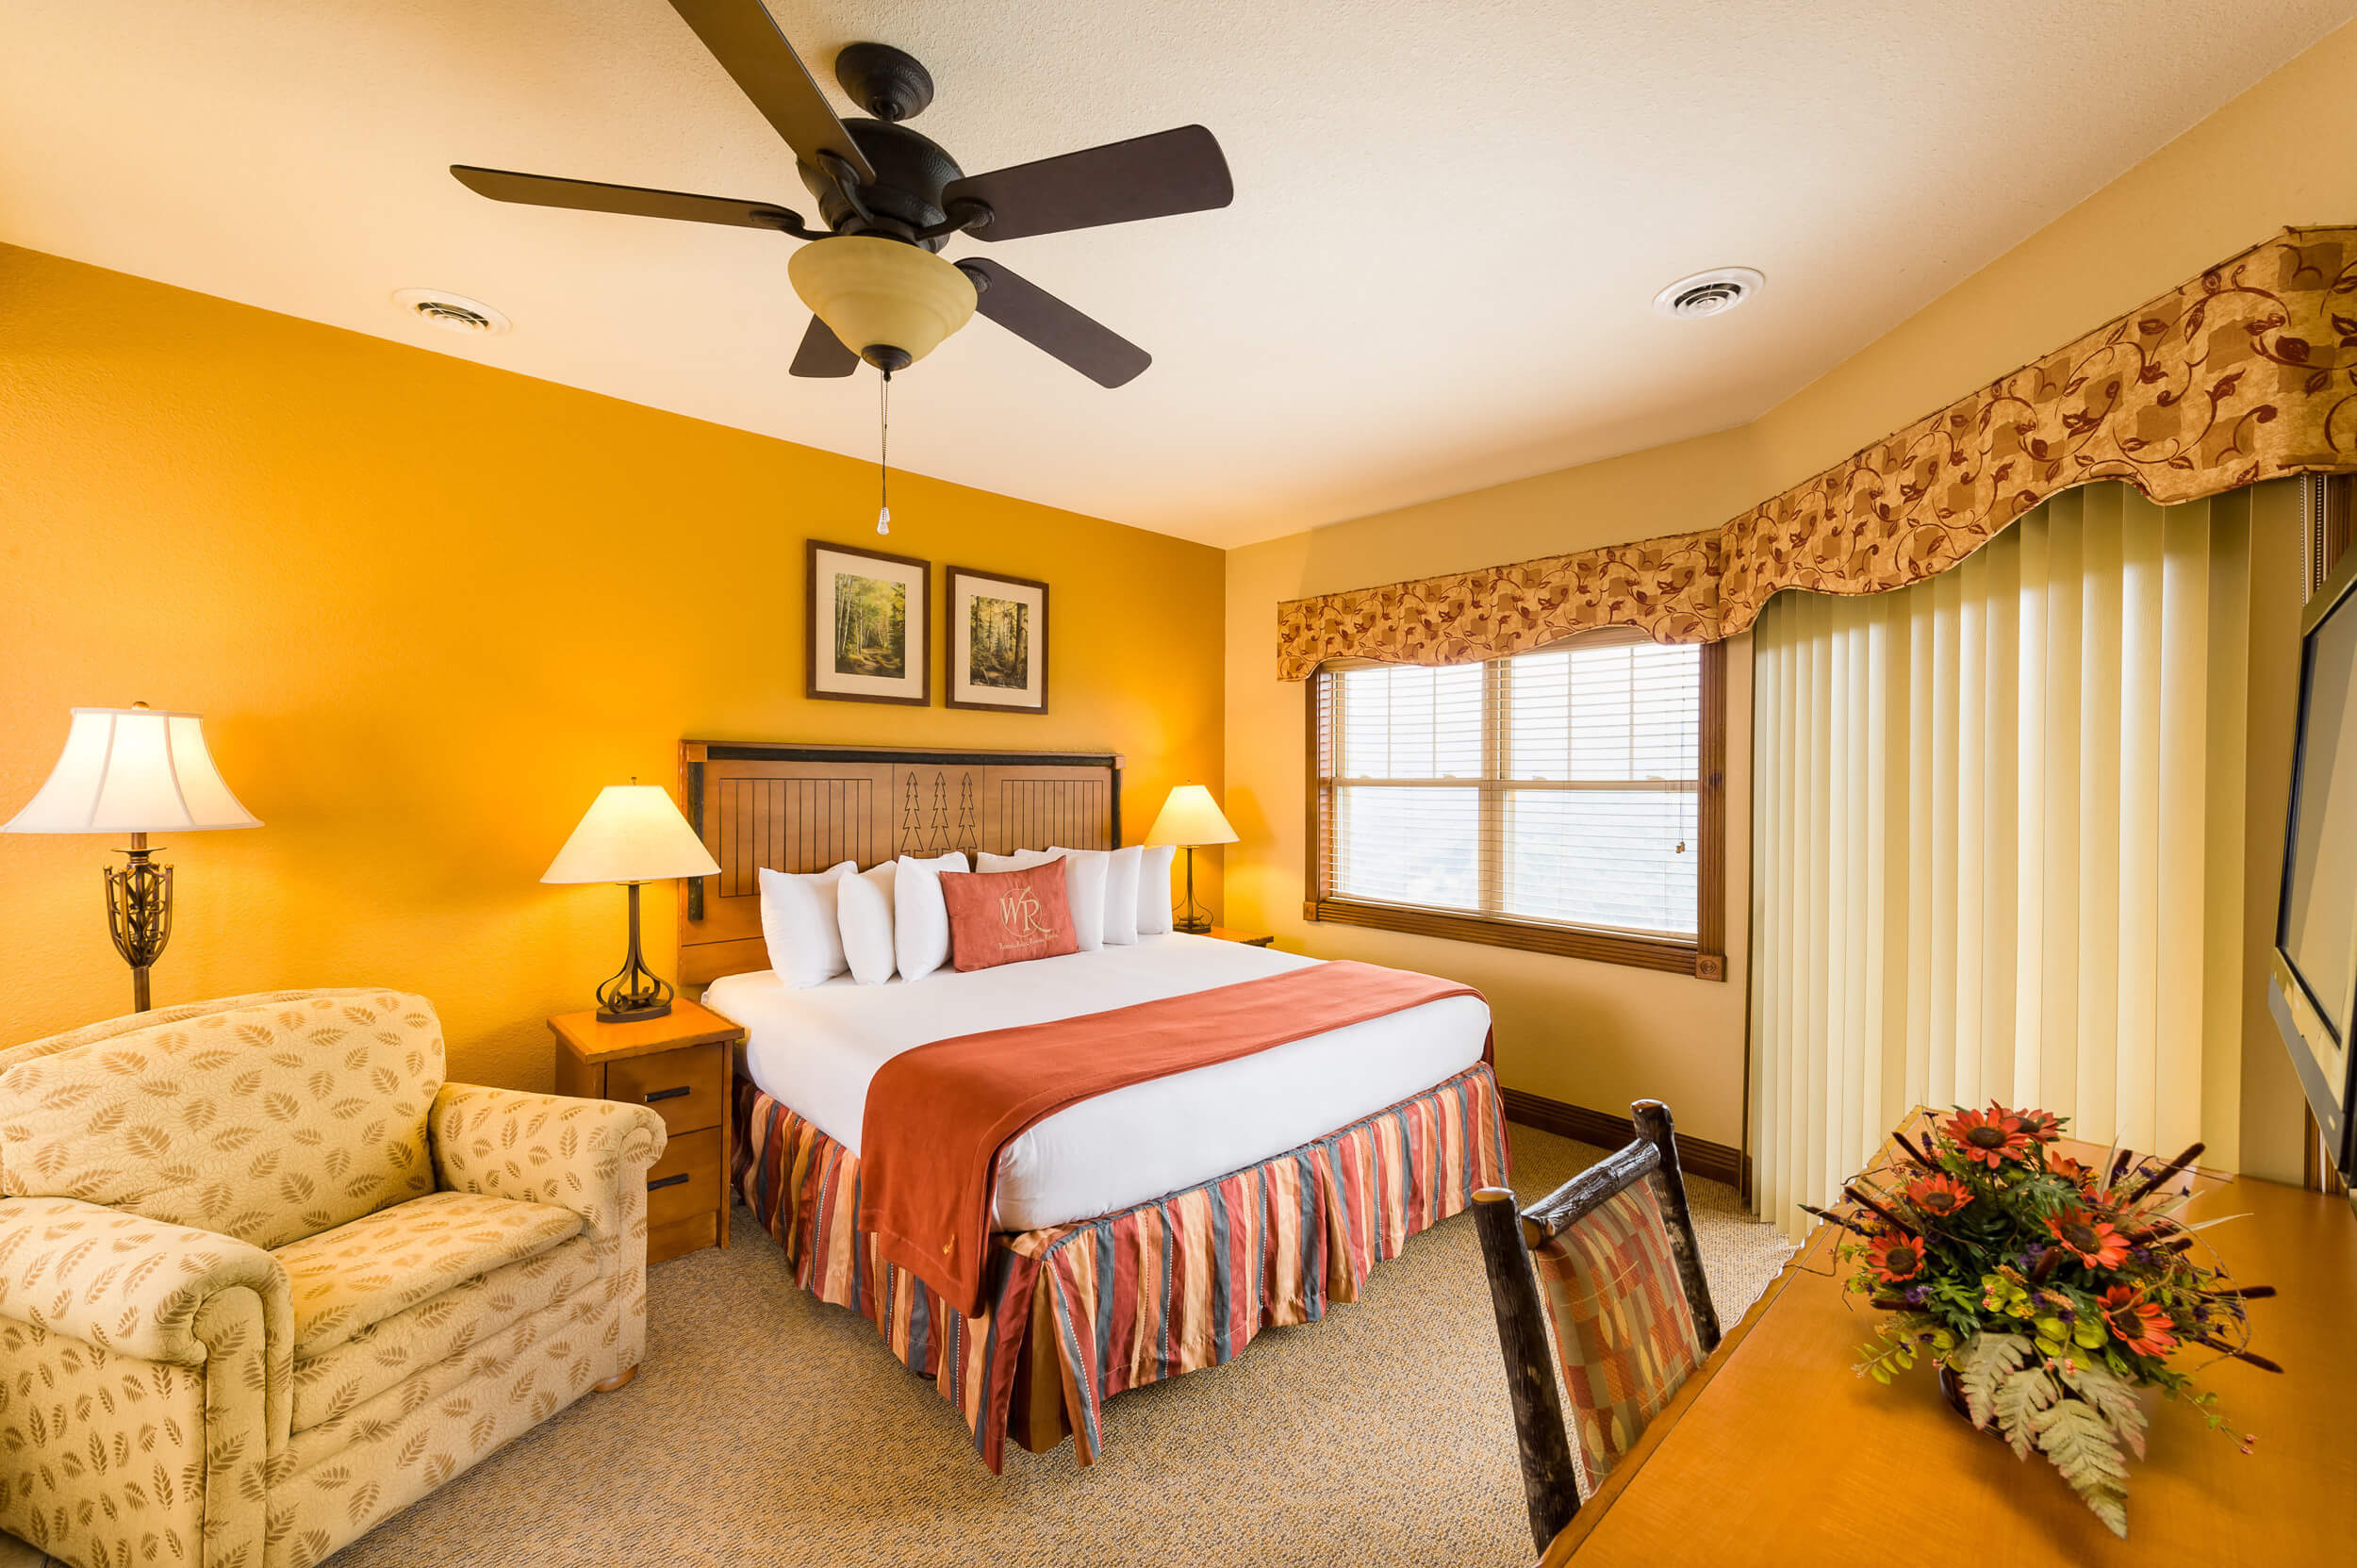 Westgate smoky mountain resort smoky mountains hotels for 2 bedroom hotels in gatlinburg tn